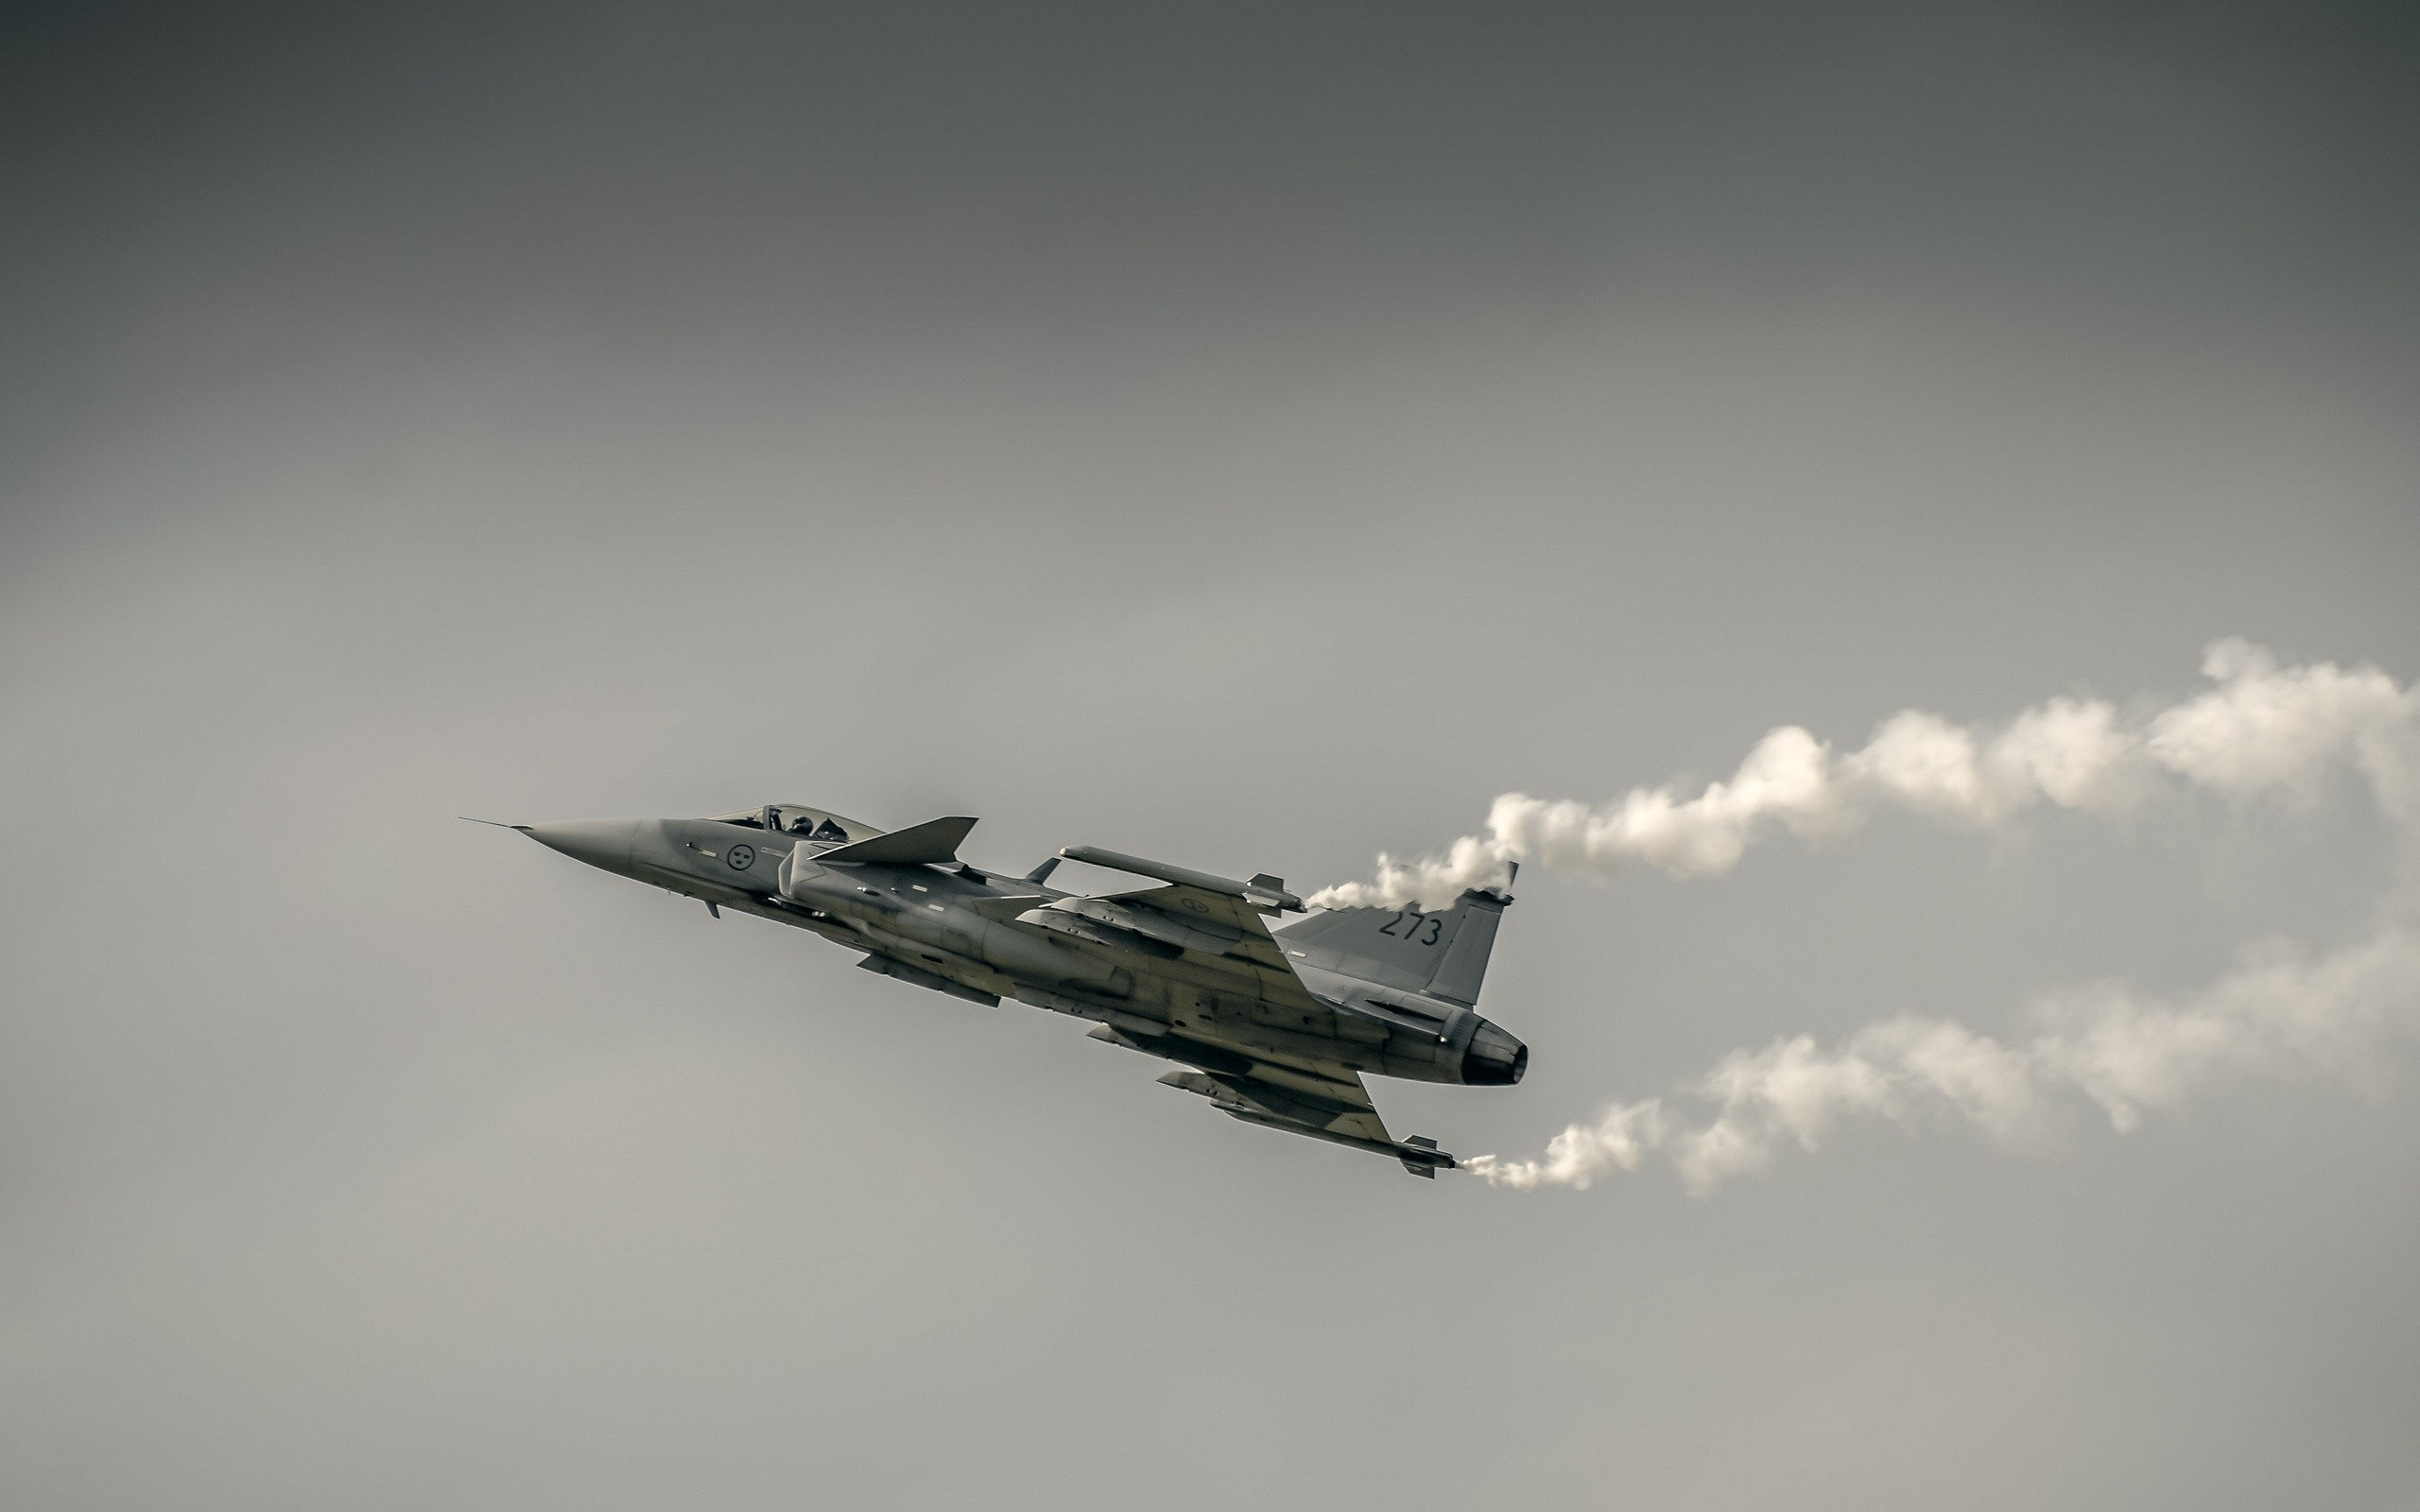 General 2560x1600 photography airplane aircraft military aircraft JAS-39 Gripen Swedish Air Force